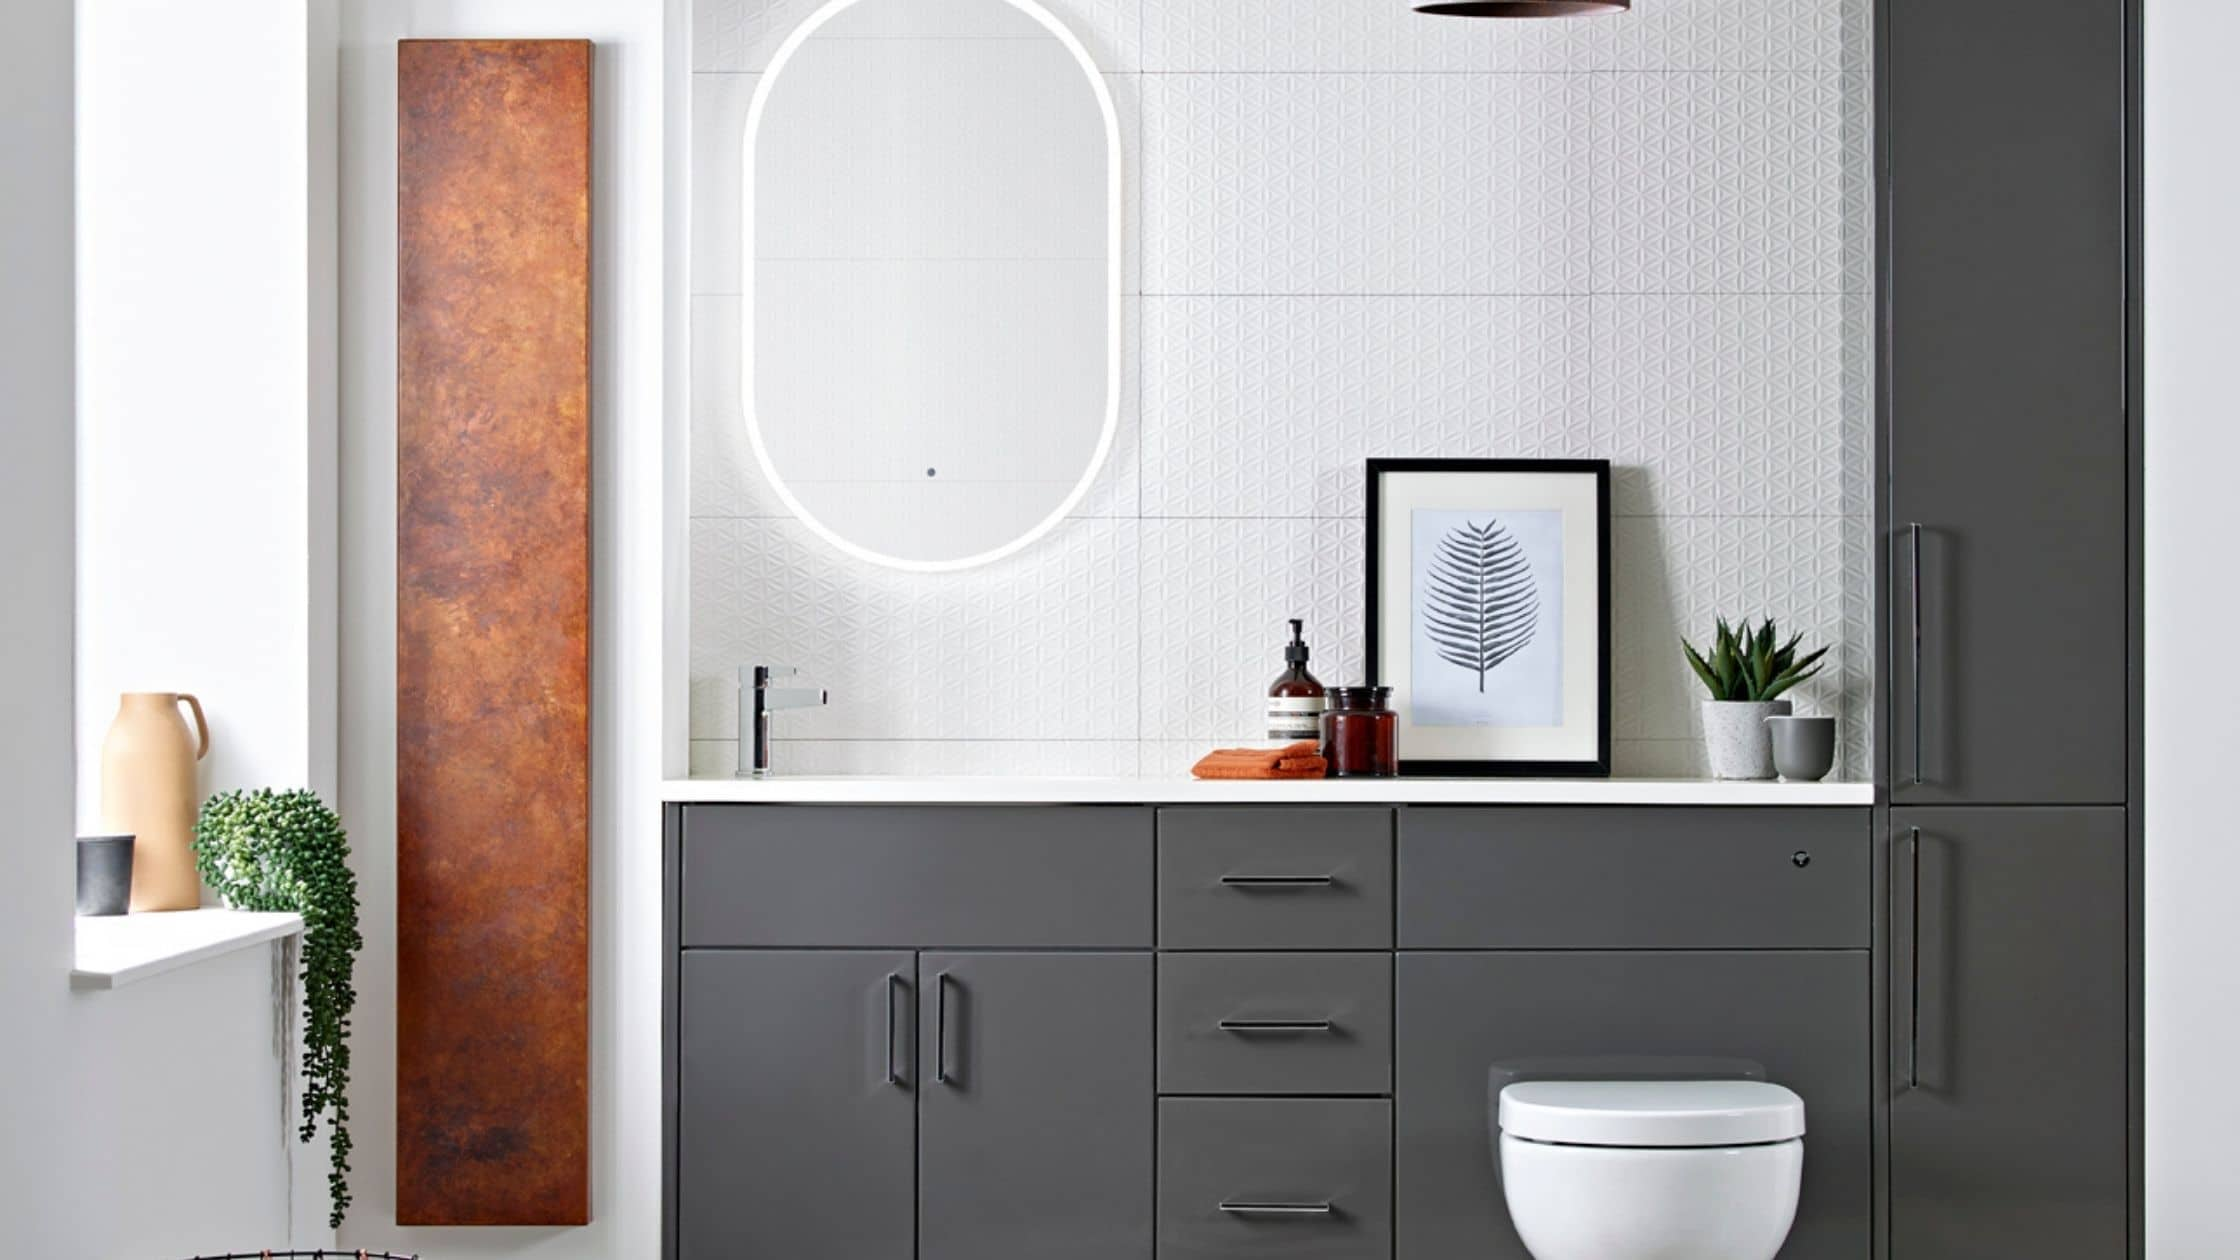 Two main types of heated towel rails and radiators